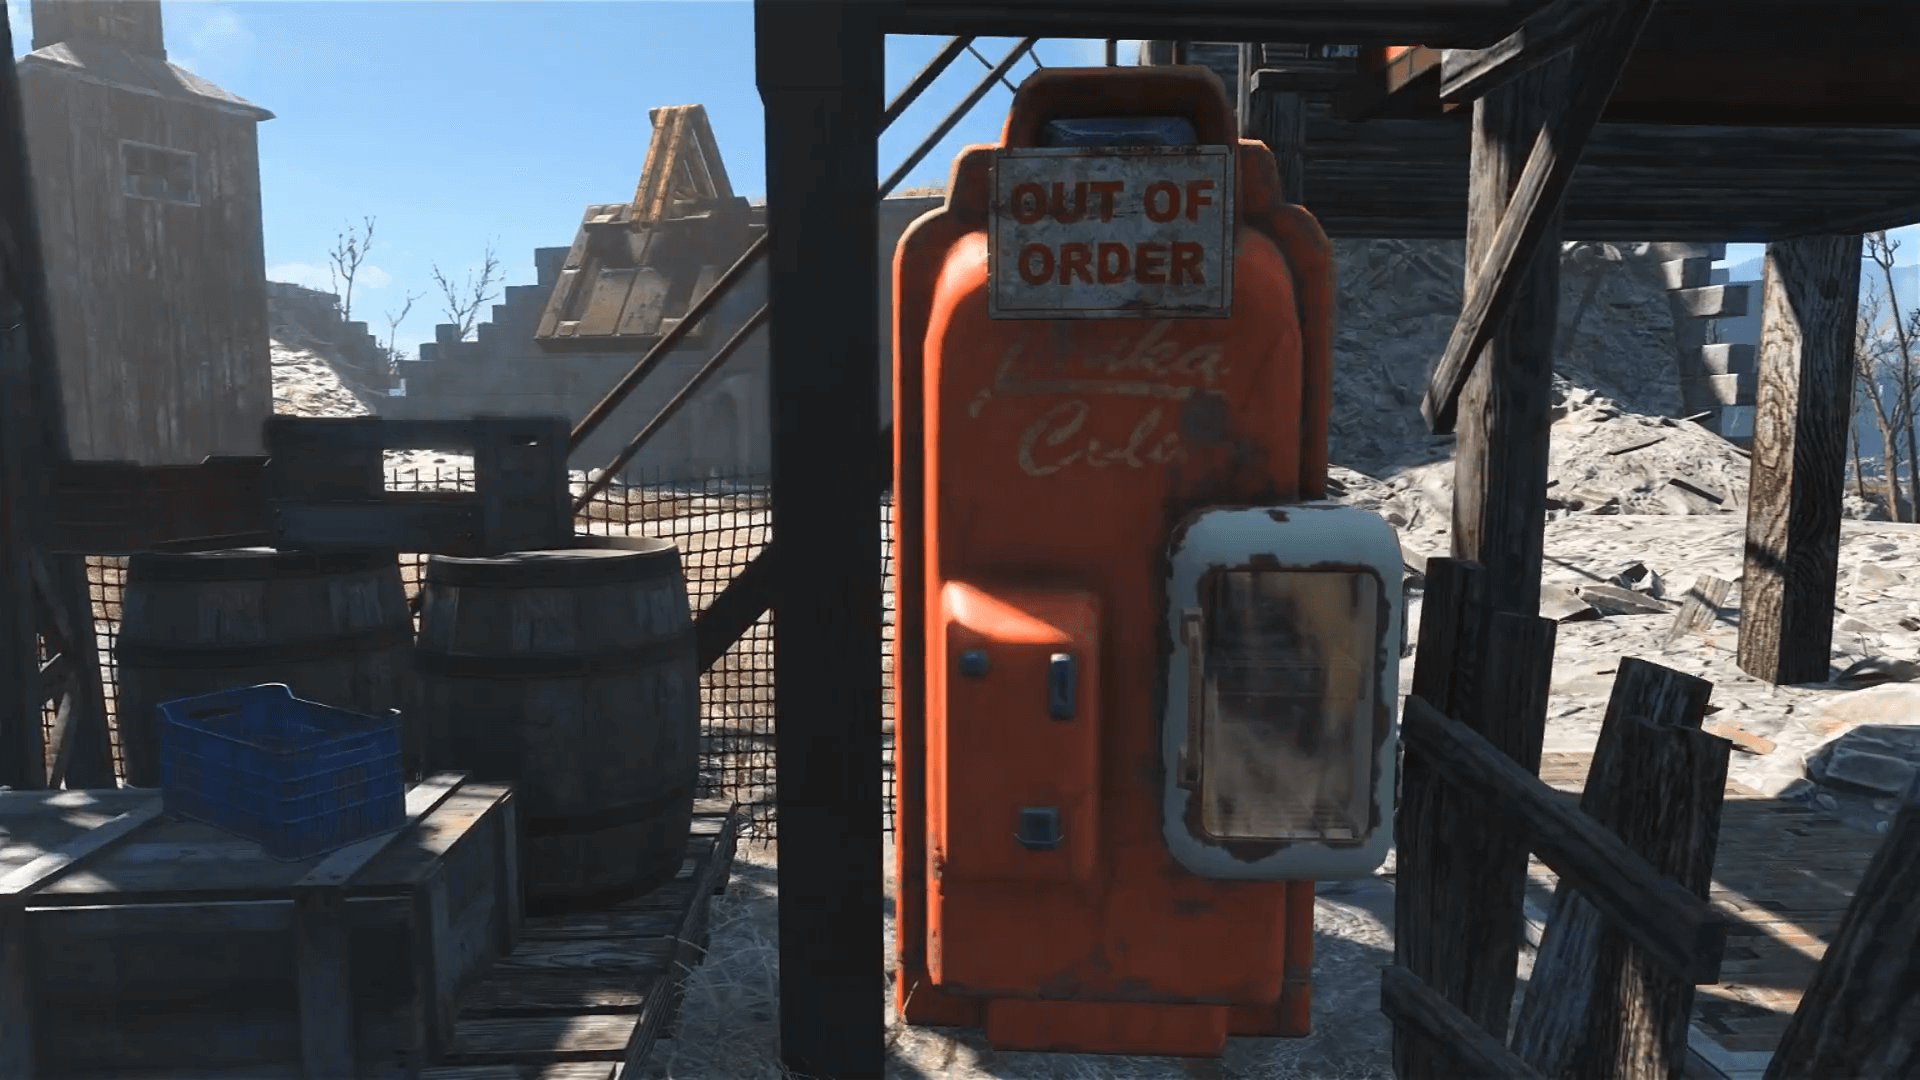 junk in Fallout 4